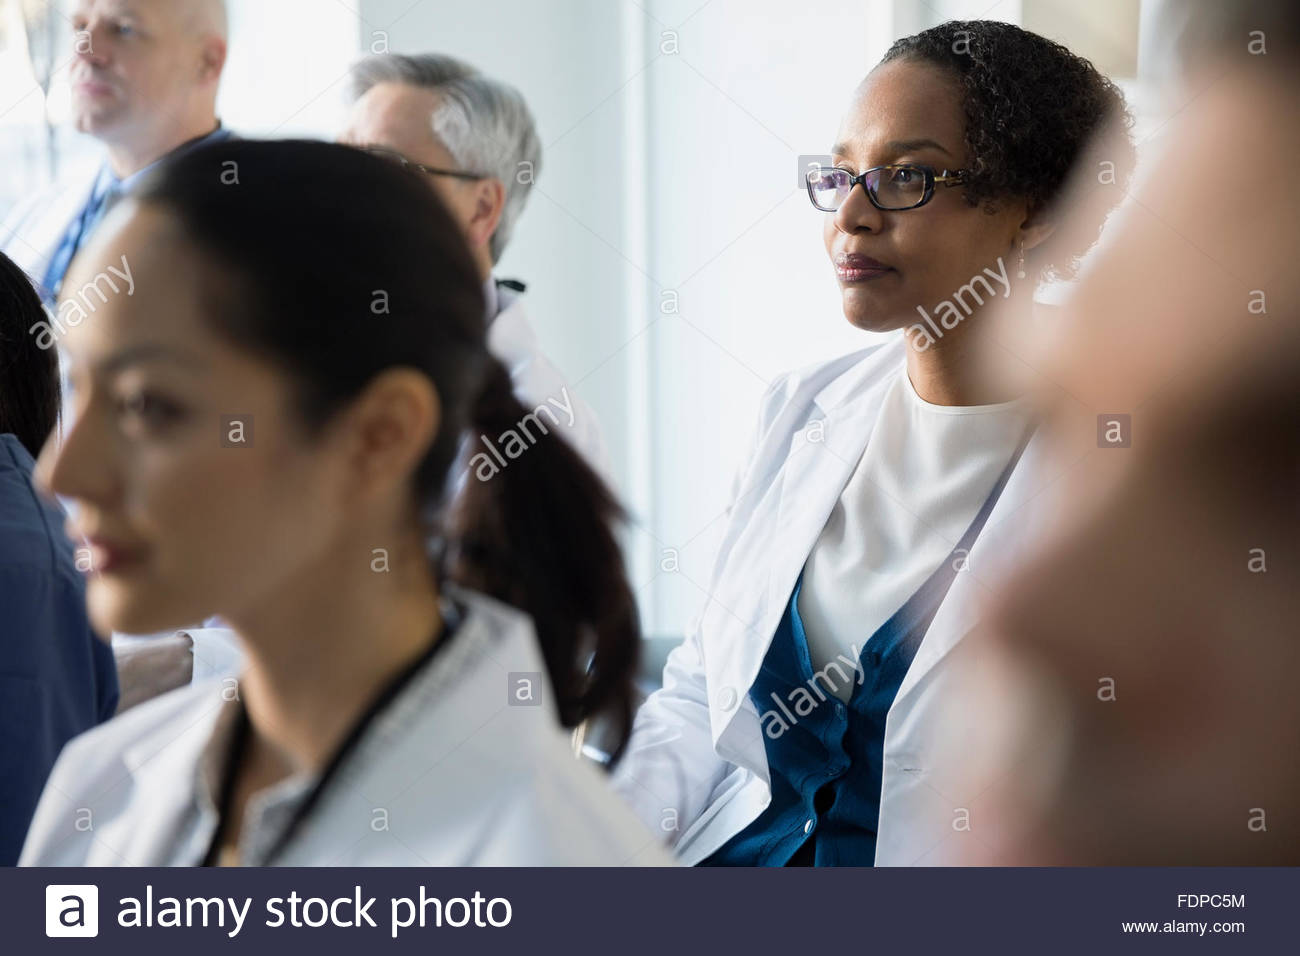 Attentive doctor listening in seminar audience Stock Photo